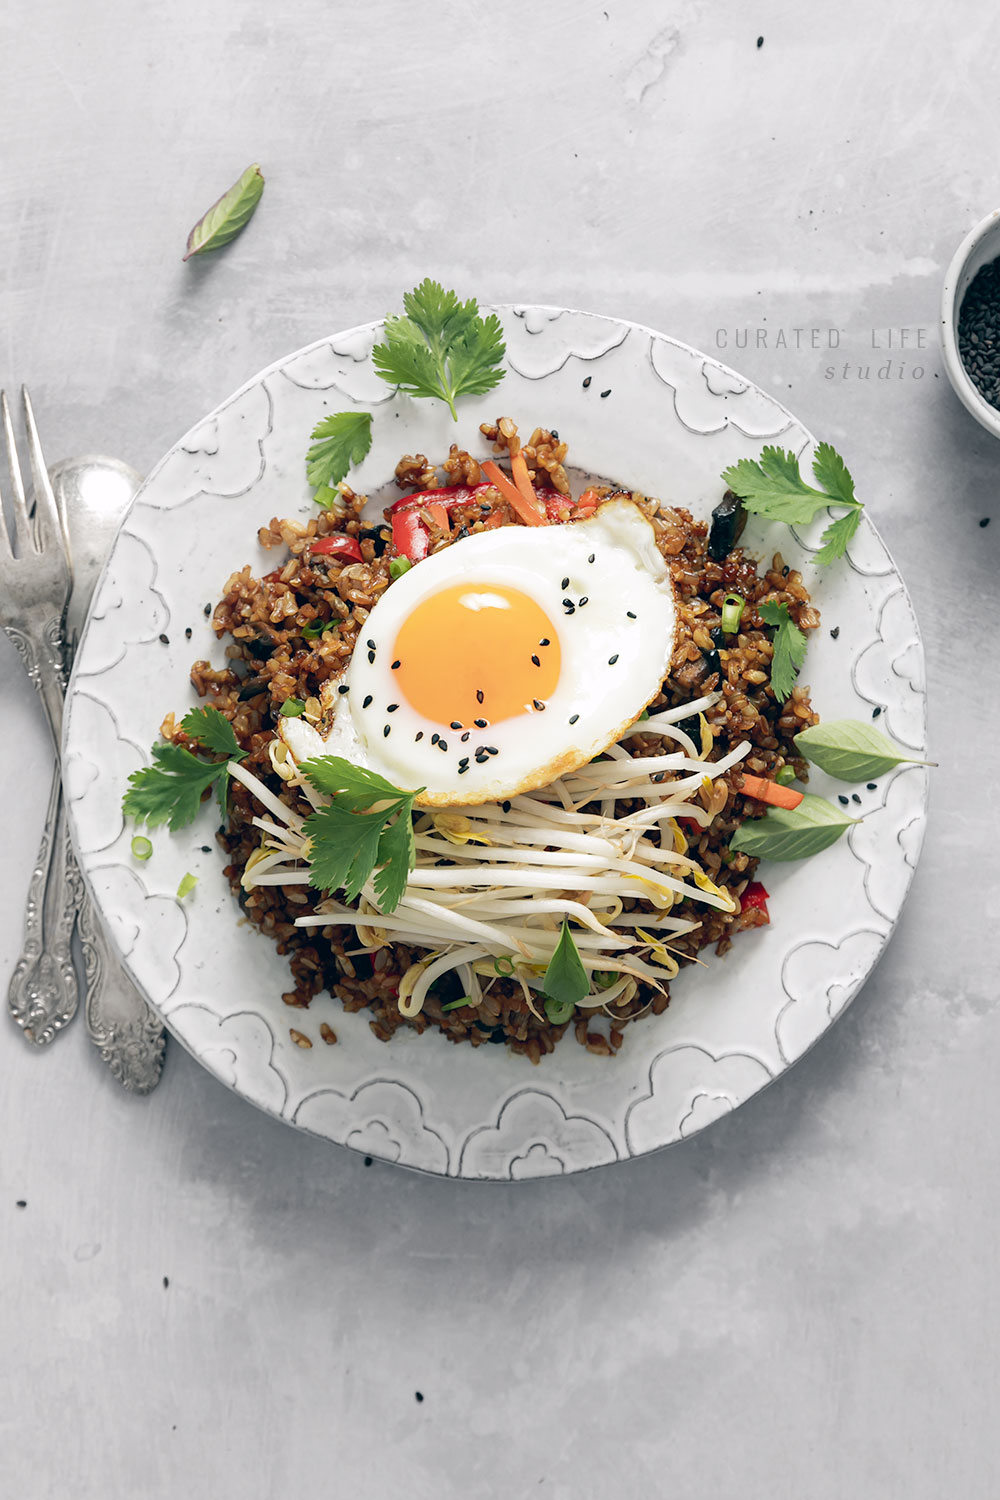 Packed with vegetables, this healthy Brown Rice Fried Rice is easy to prepare making it a perfect vegetarian weeknight meal! Gluten Free + easily adaptable to be vegan.  #fried #rice #recipe #vegetarian #vegan #gluten-free #easy #egg #vegetable #veggie #how-to-make #homemade